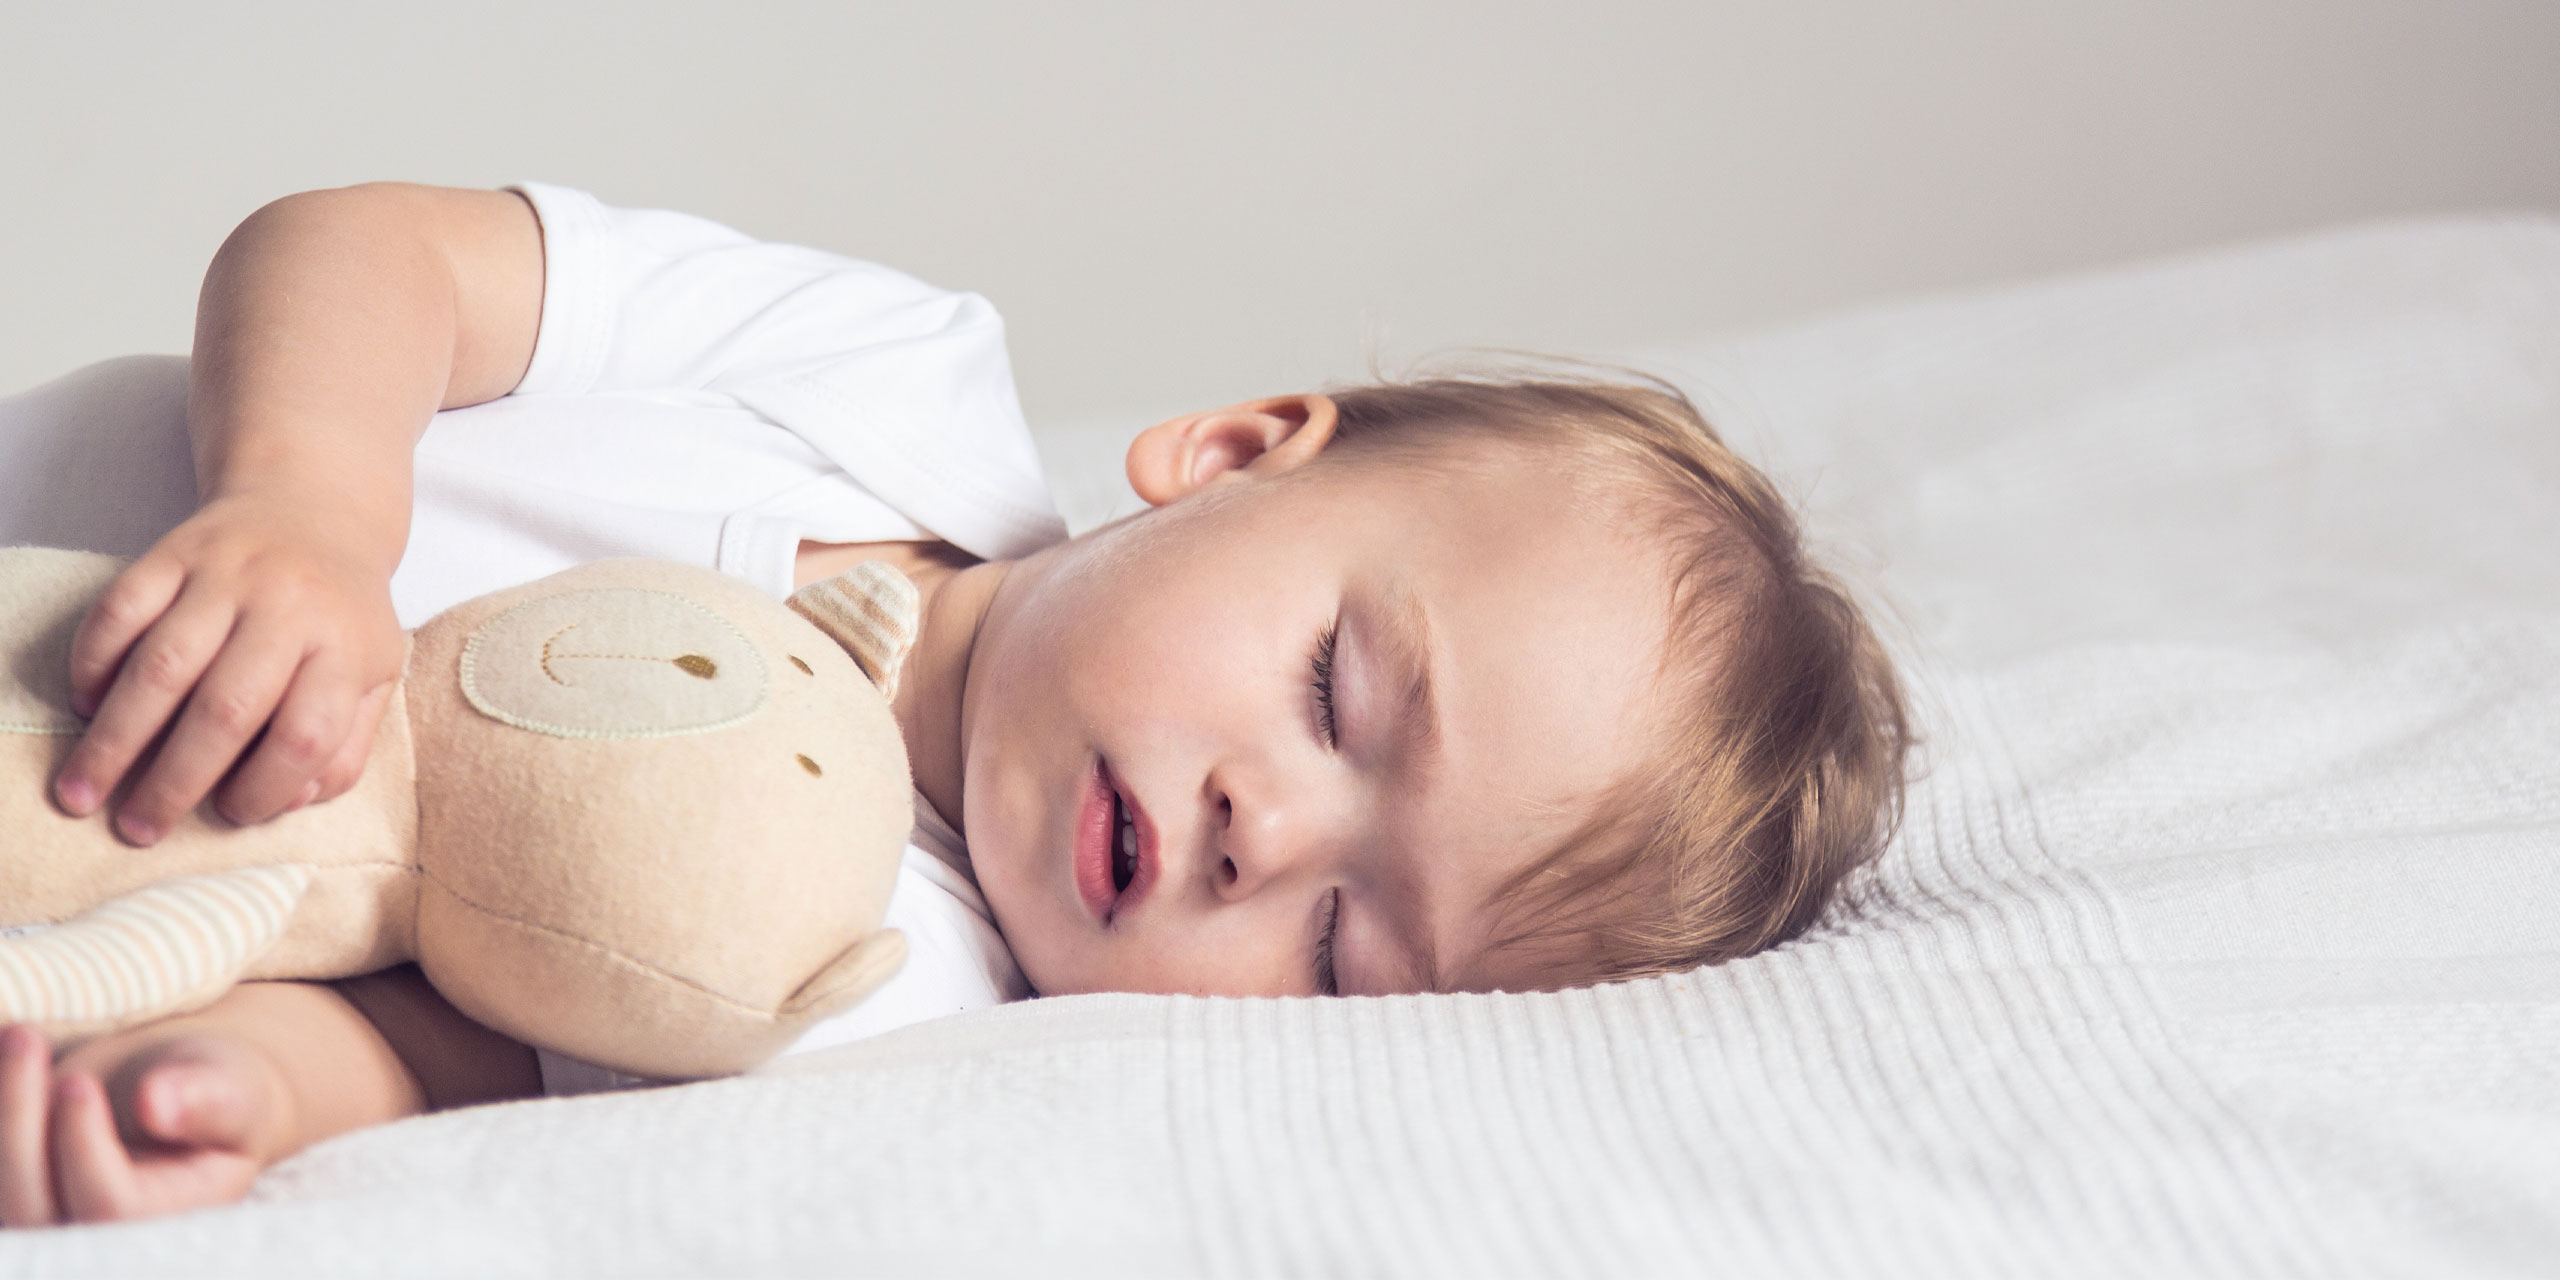 Sleeping Baby; Courtesy of Mallmo/Shutterstock.com